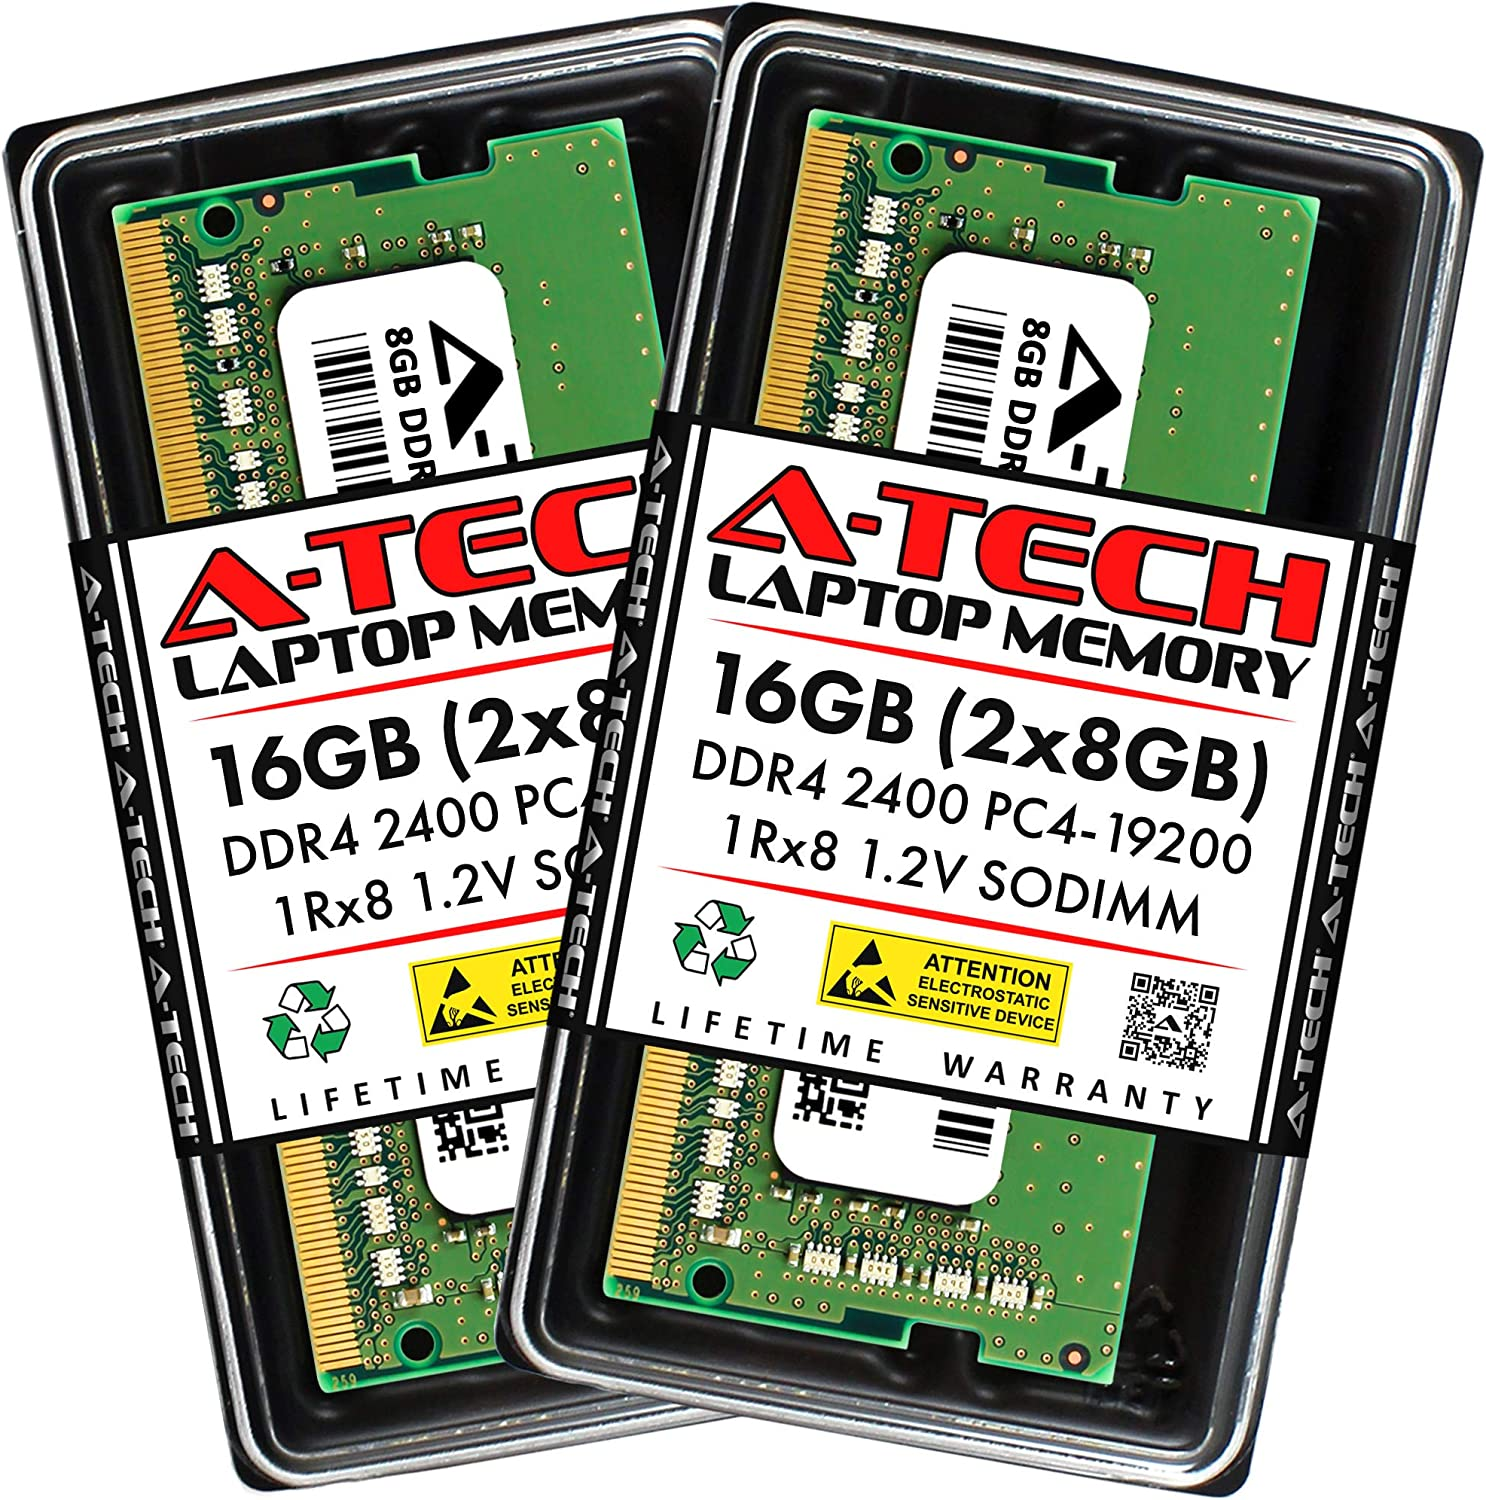 A-Tech 16GB (2x8GB) DDR4 2400MHz SODIMM PC4-19200 1Rx8 Single Rank 260-Pin CL17 1.2V Non-ECC Unbuffered Notebook Laptop RAM Memory Upgrade Kit